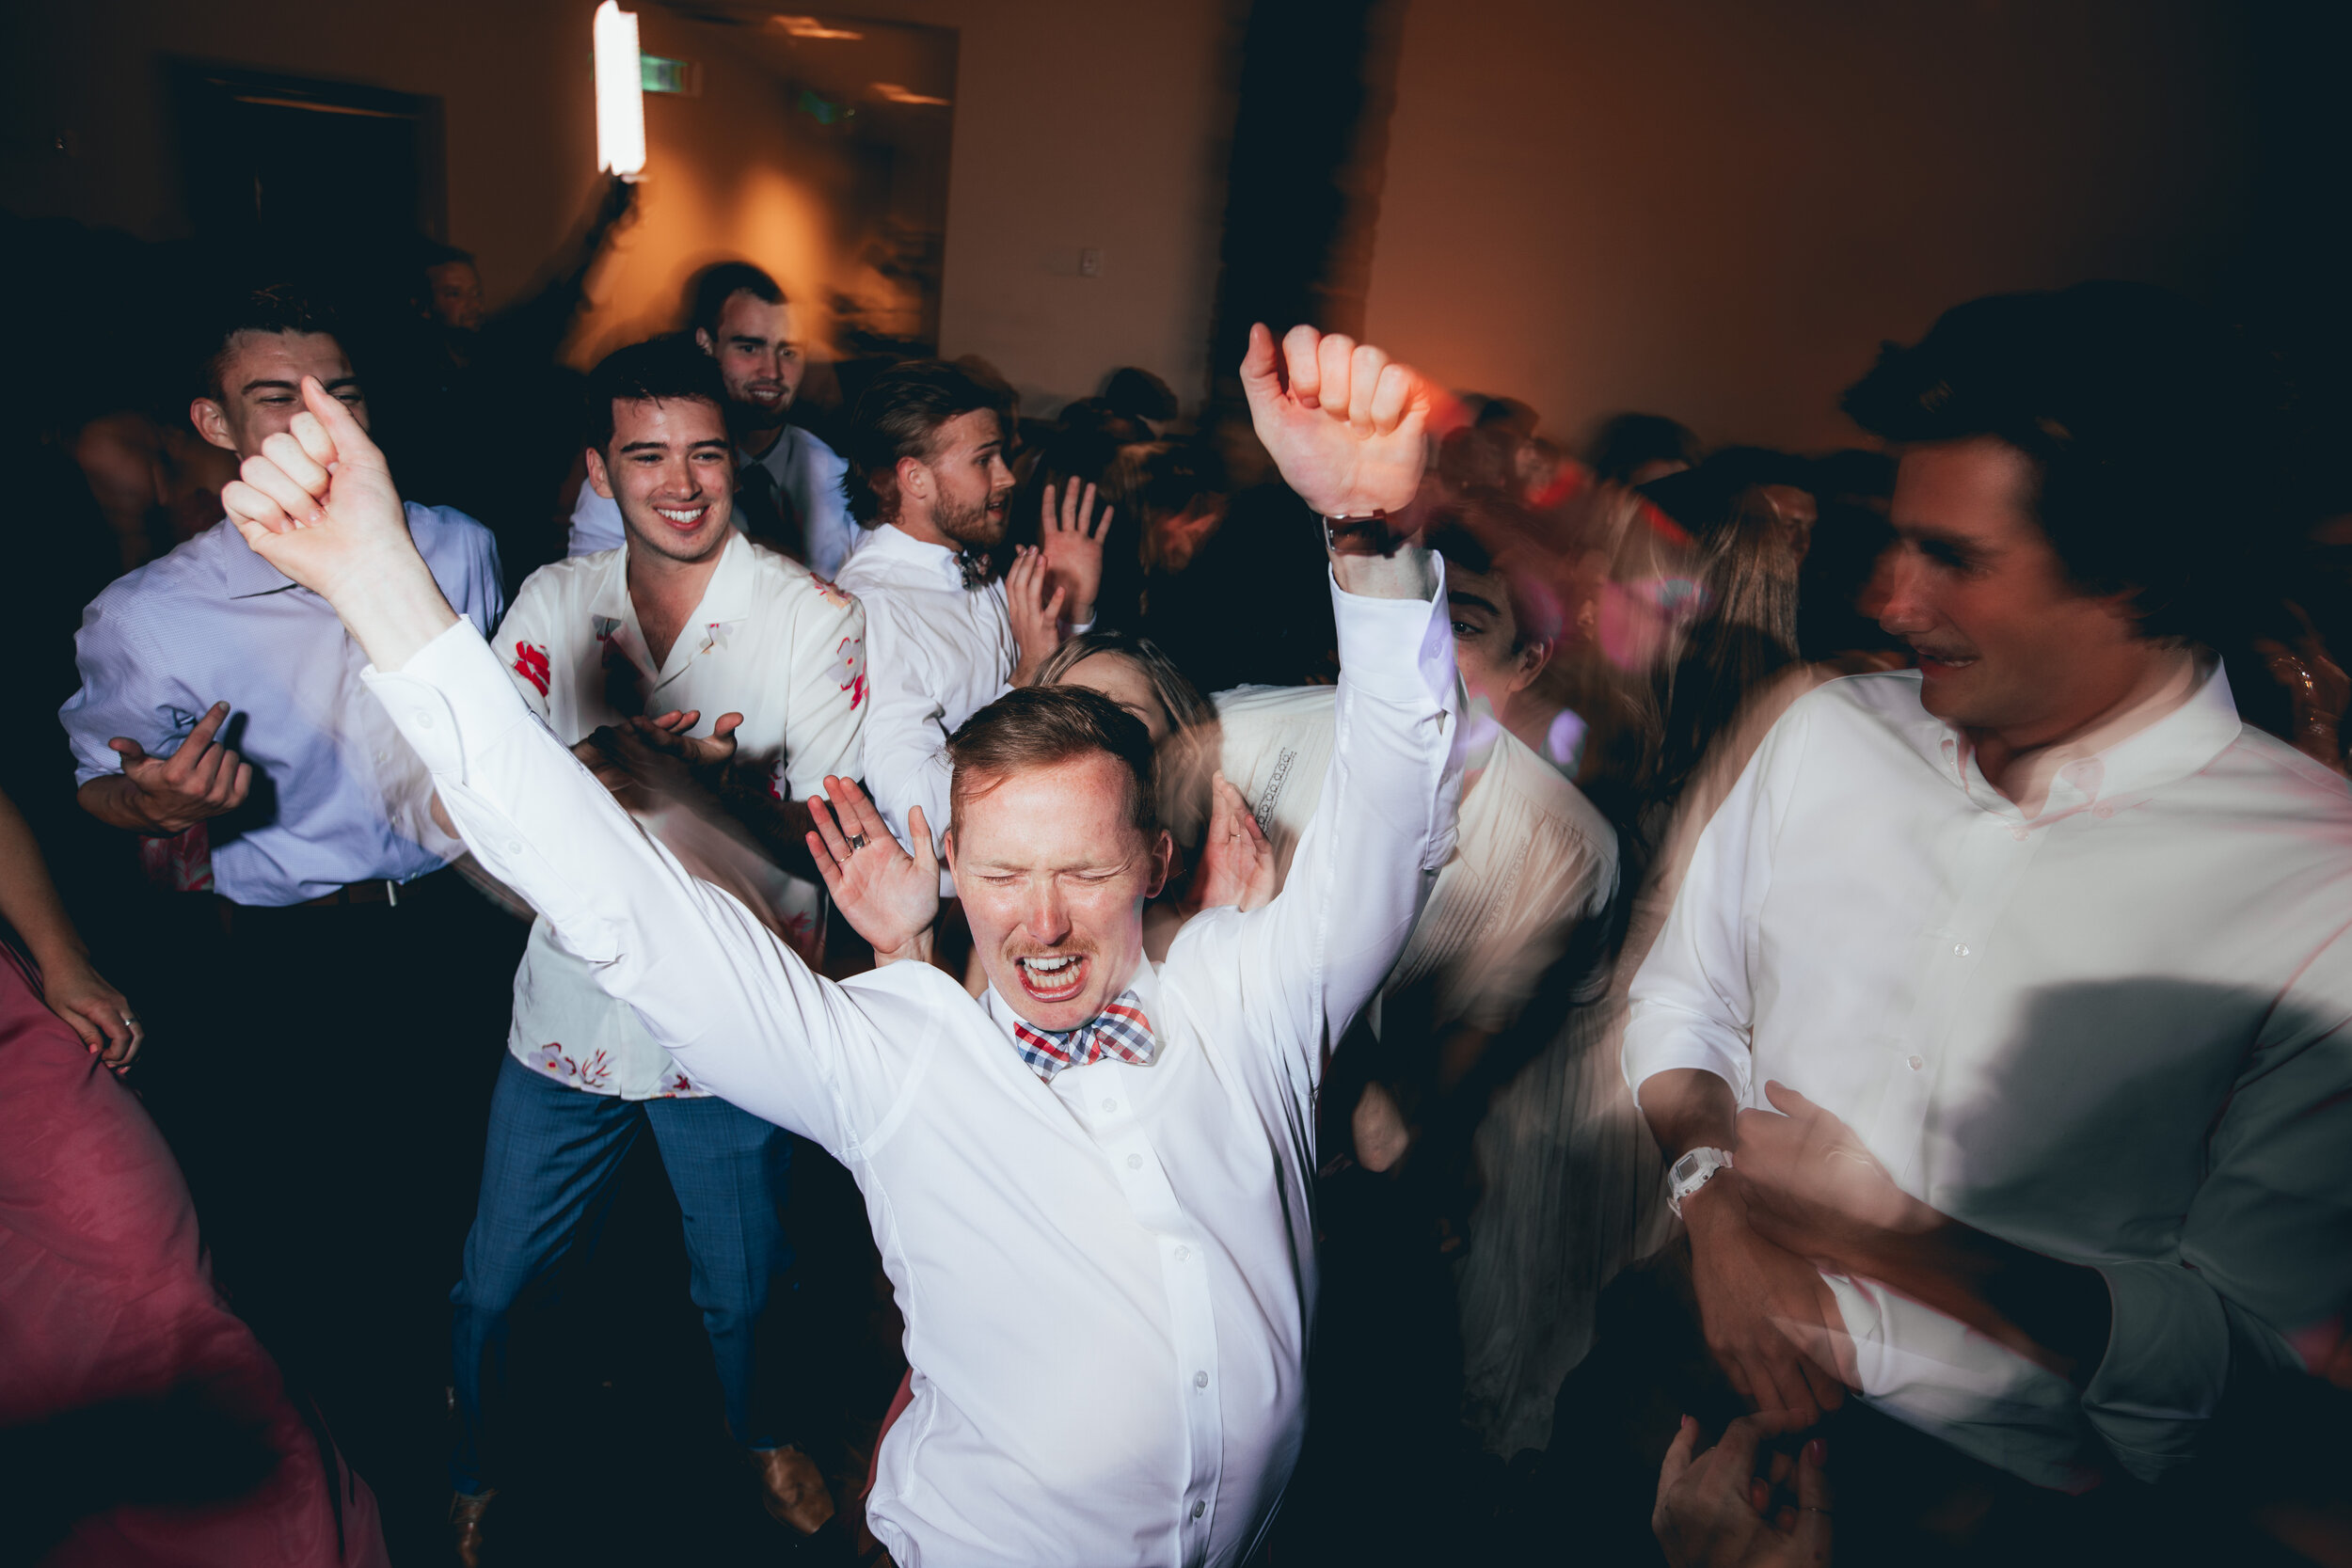 Let 's Dance. - Let's connect and talk more about making your special day perfect.